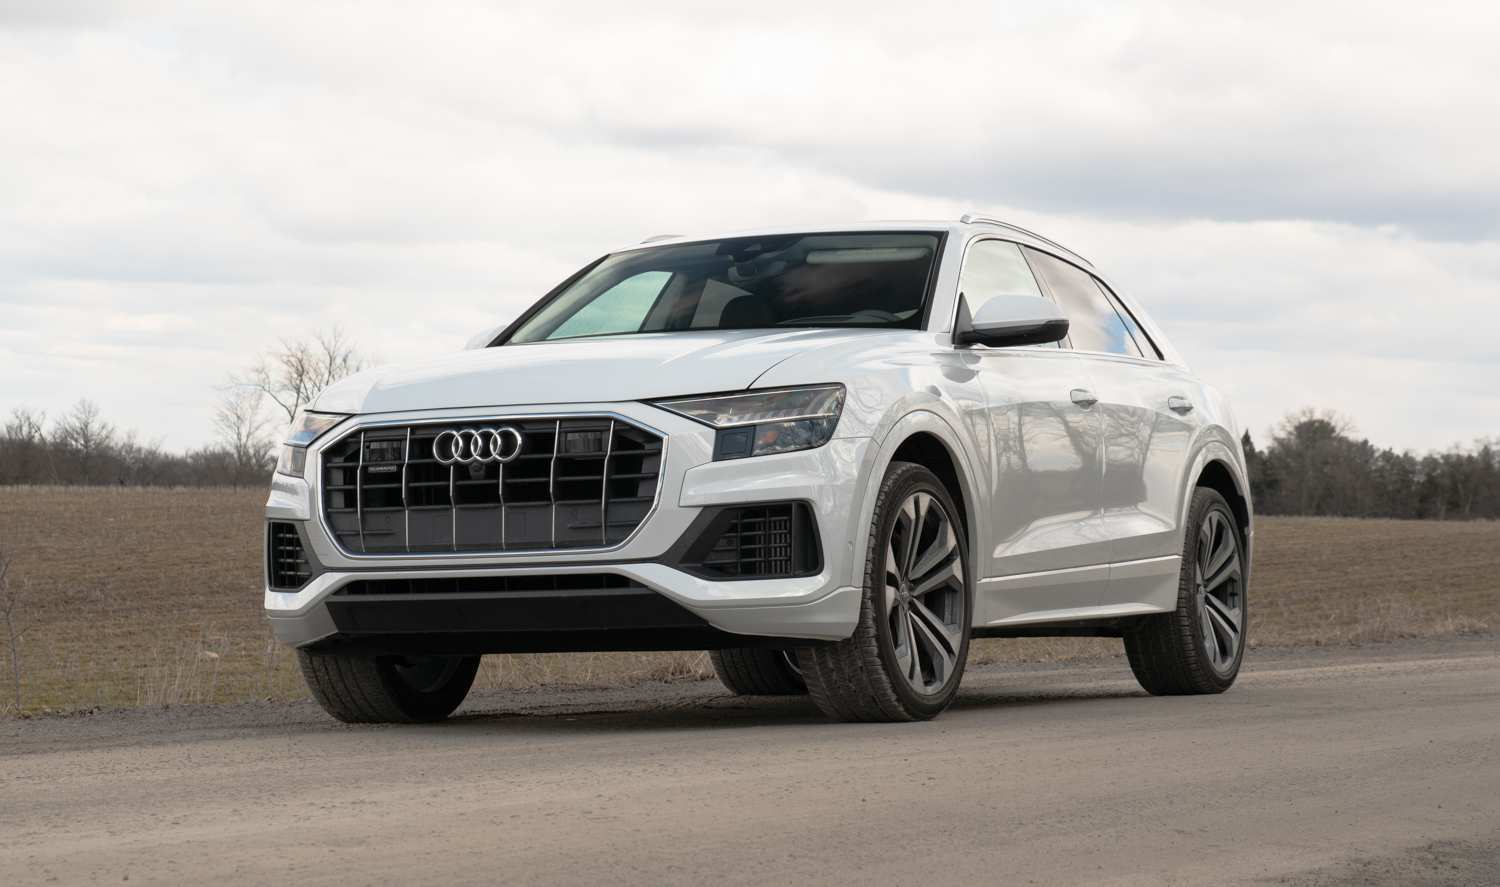 19 Great 2020 Audi Order Guide New Review with 2020 Audi Order Guide